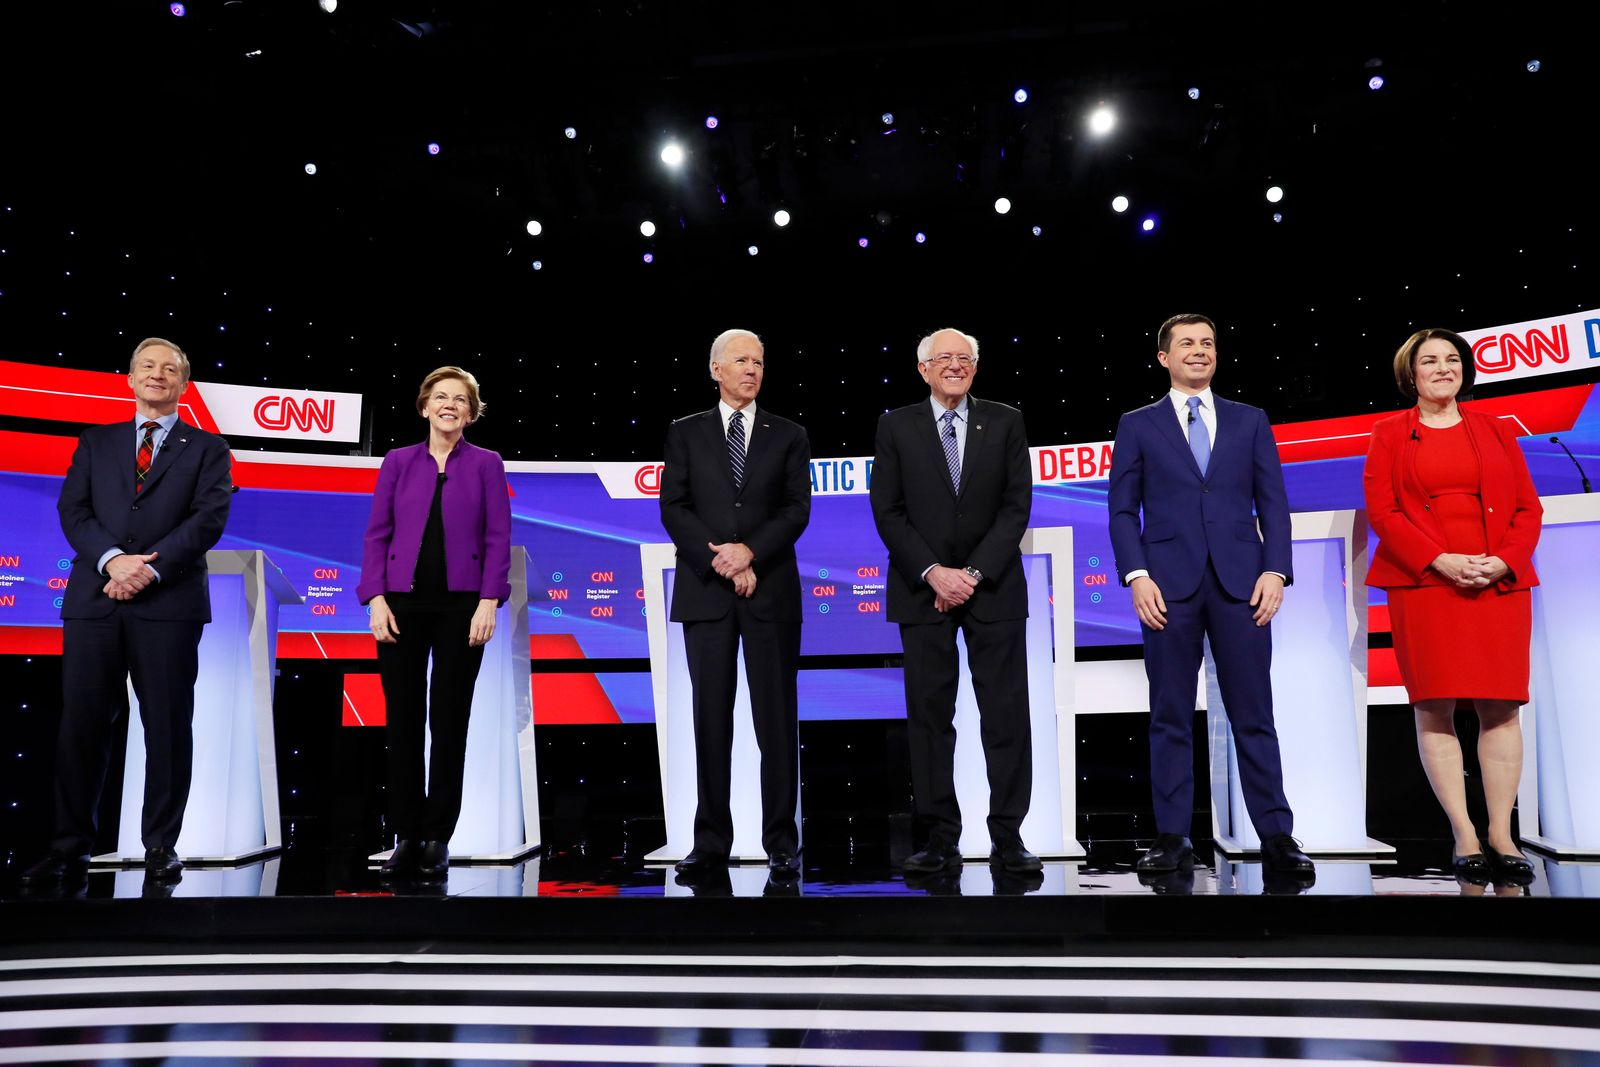 From left, Democratic presidential candidates businessman Tom Steyer, Sen. Elizabeth Warren, D-Mass., former Vice President Joe Biden, Sen. Bernie Sanders, I-Vt., former South Bend Mayor Pete Buttigieg, and Sen. Amy Klobuchar, D-Minn., stand on stage, Tuesday, Jan. 14, 2020, before a Democratic presidential primary debate hosted by CNN and the Des Moines Register in Des Moines, Iowa. (AP Photo/Charlie Neibergall)